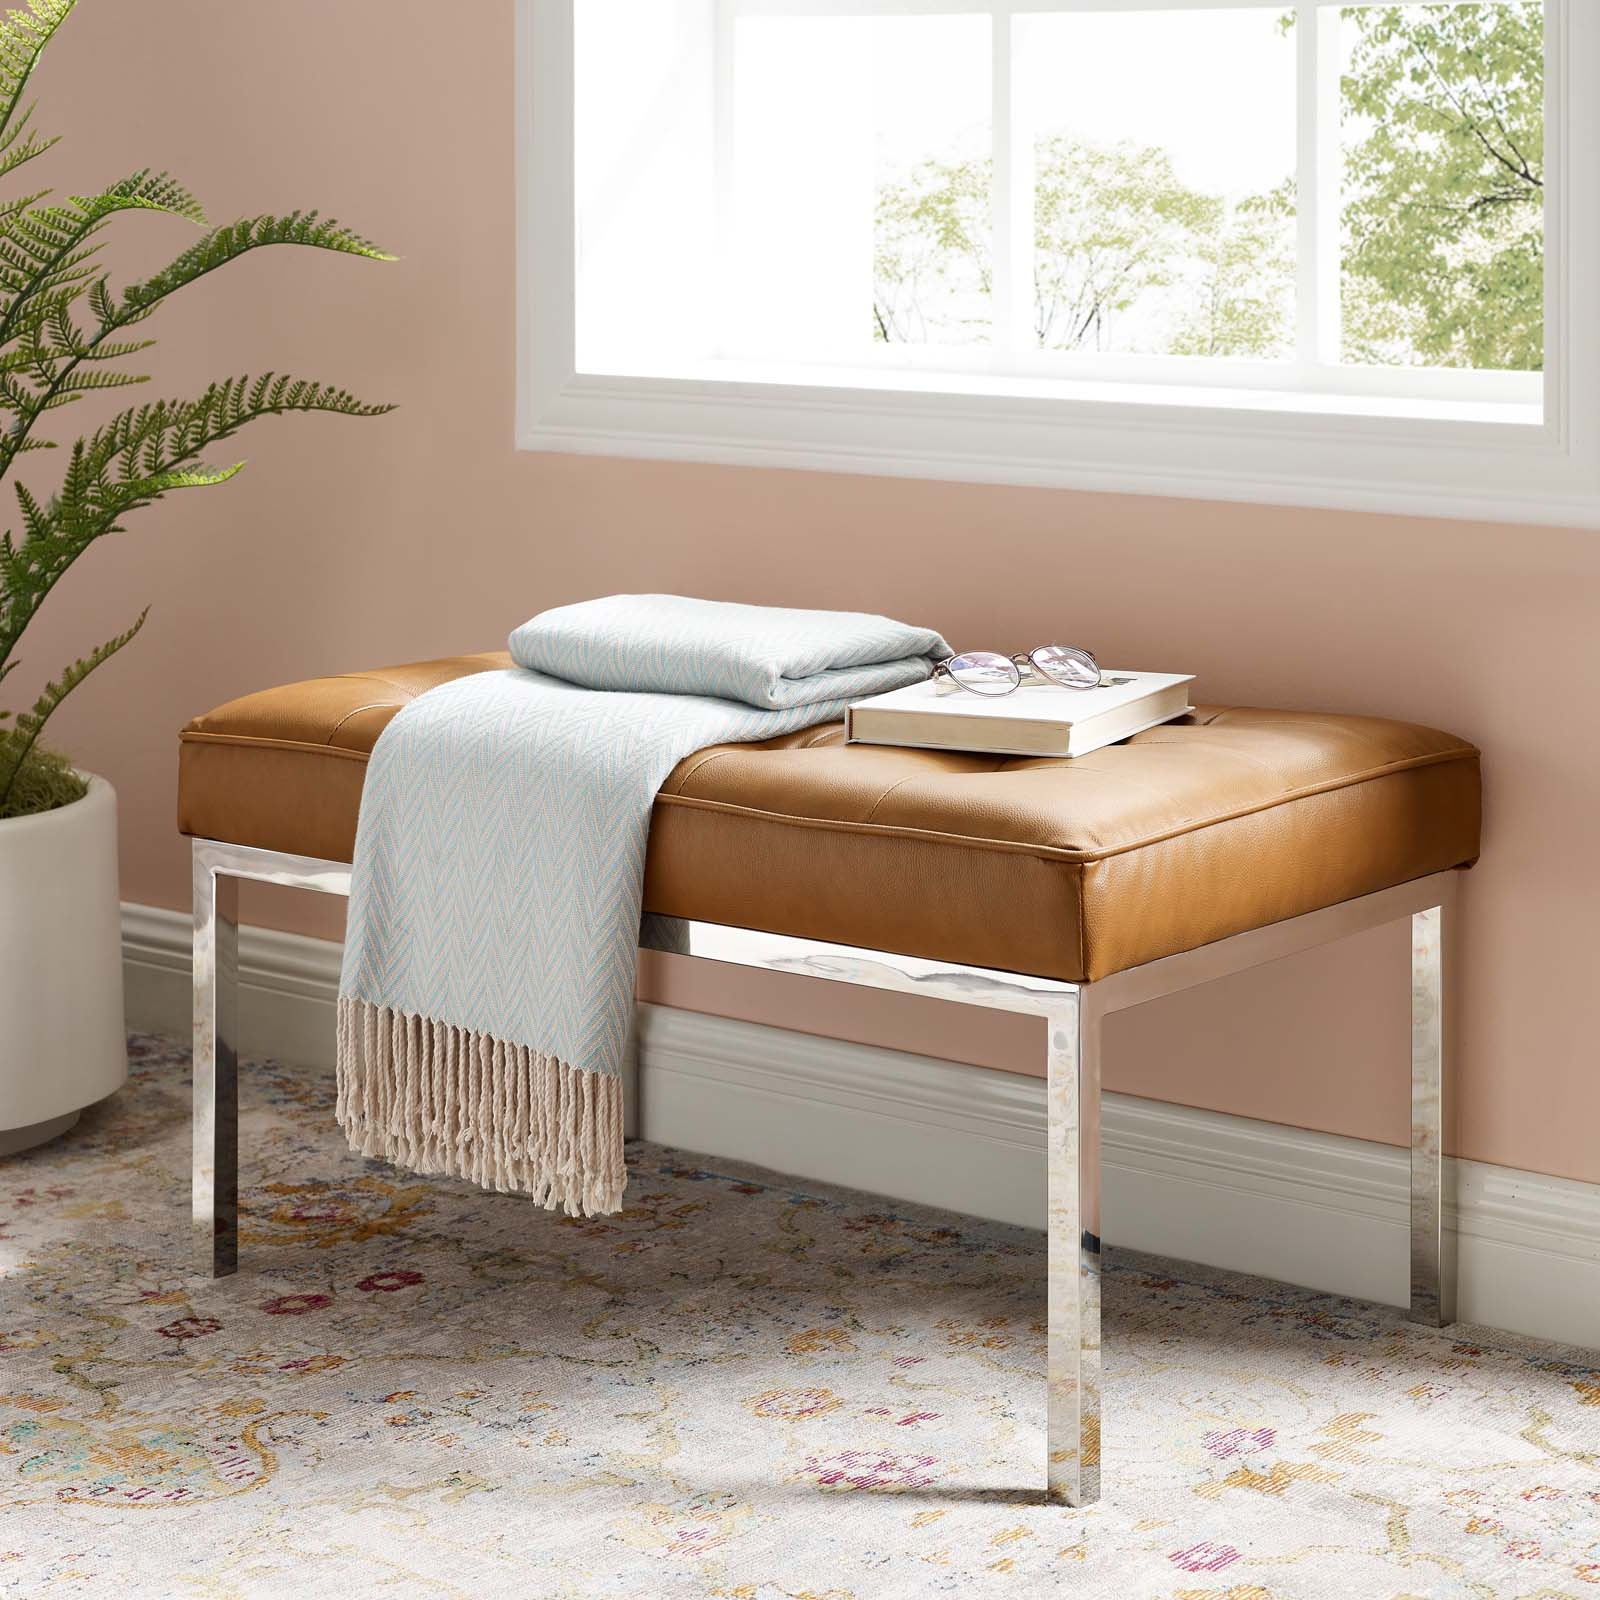 Loft Tufted Medium Upholstered Faux Leather Bench in Silver Tan